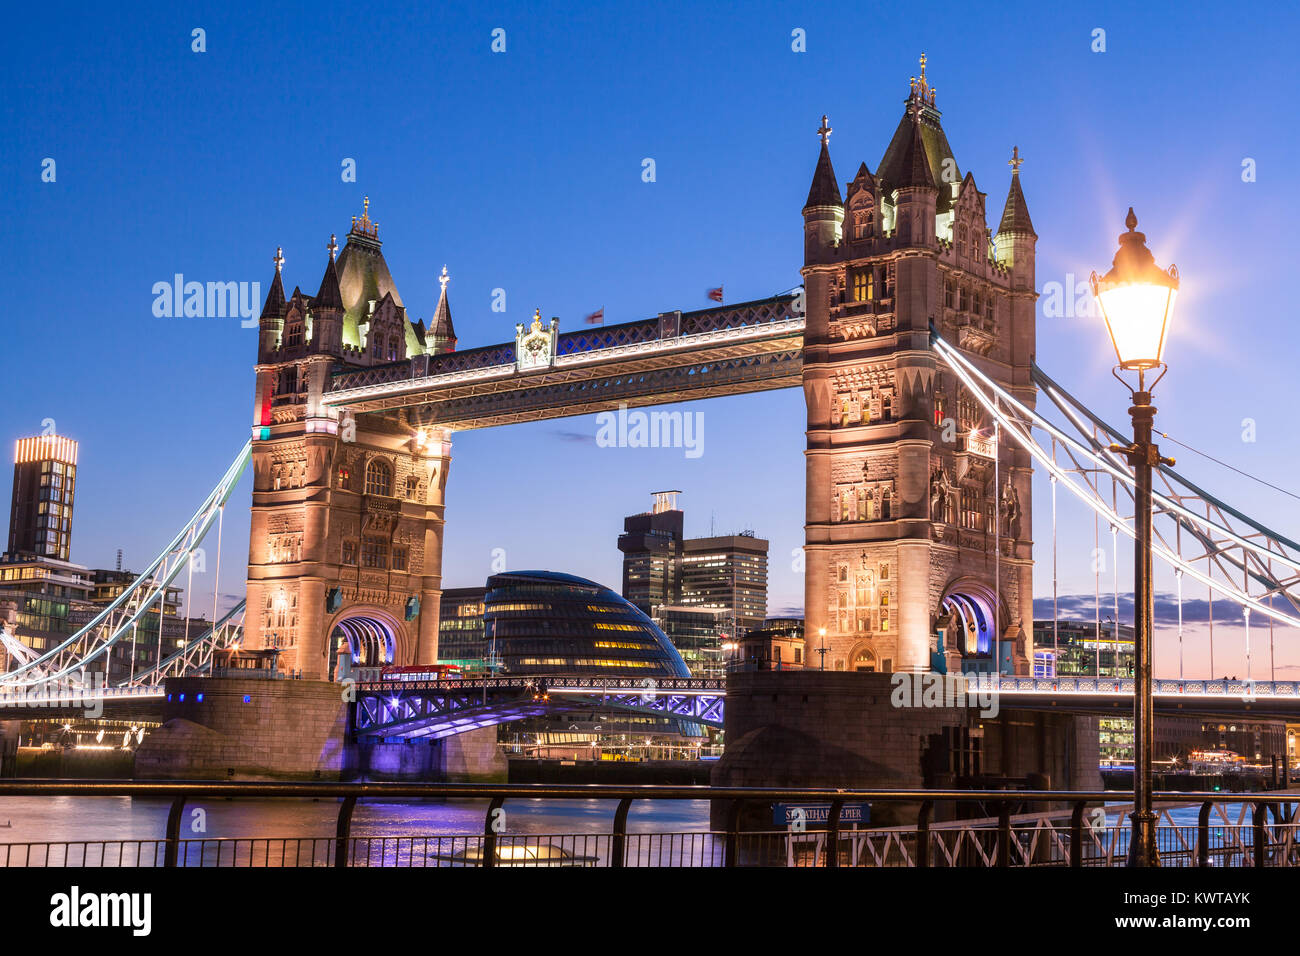 Illuminated Tower Bridge. London, England - Stock Image